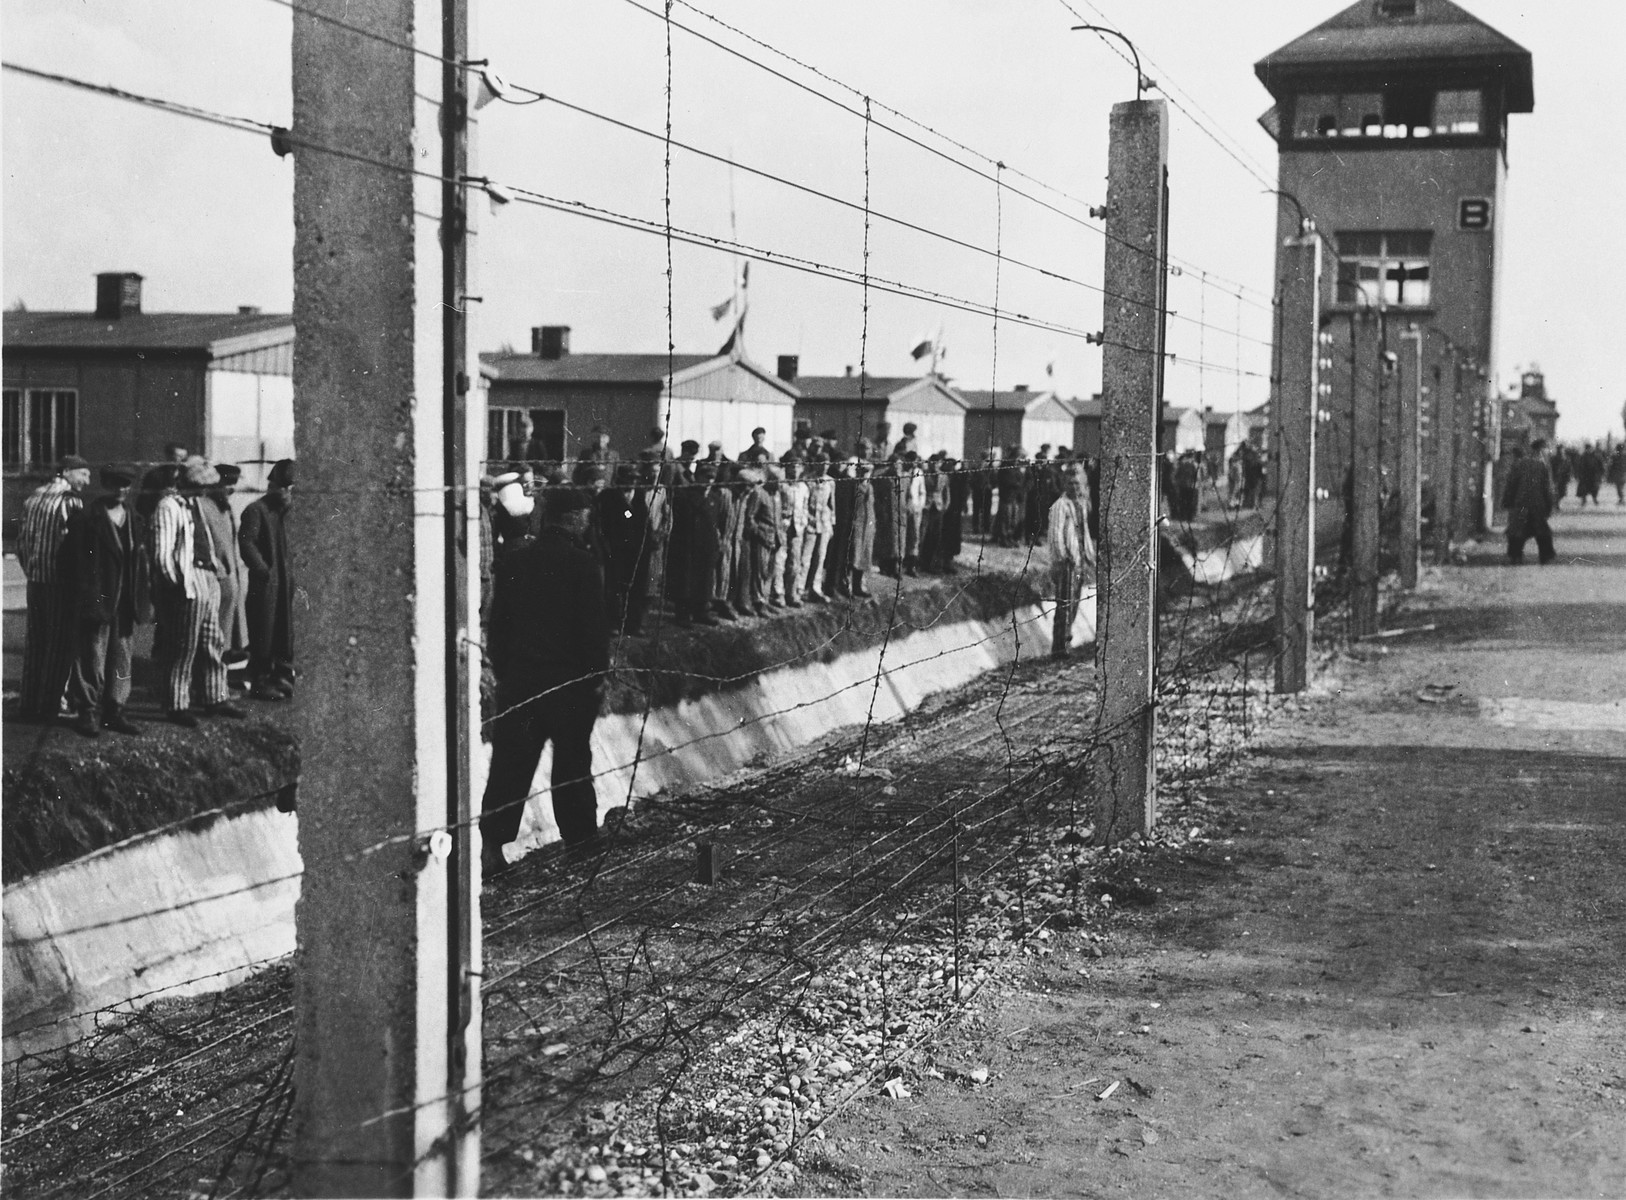 Survivors stand behind the barbed wire fence in Dachau.